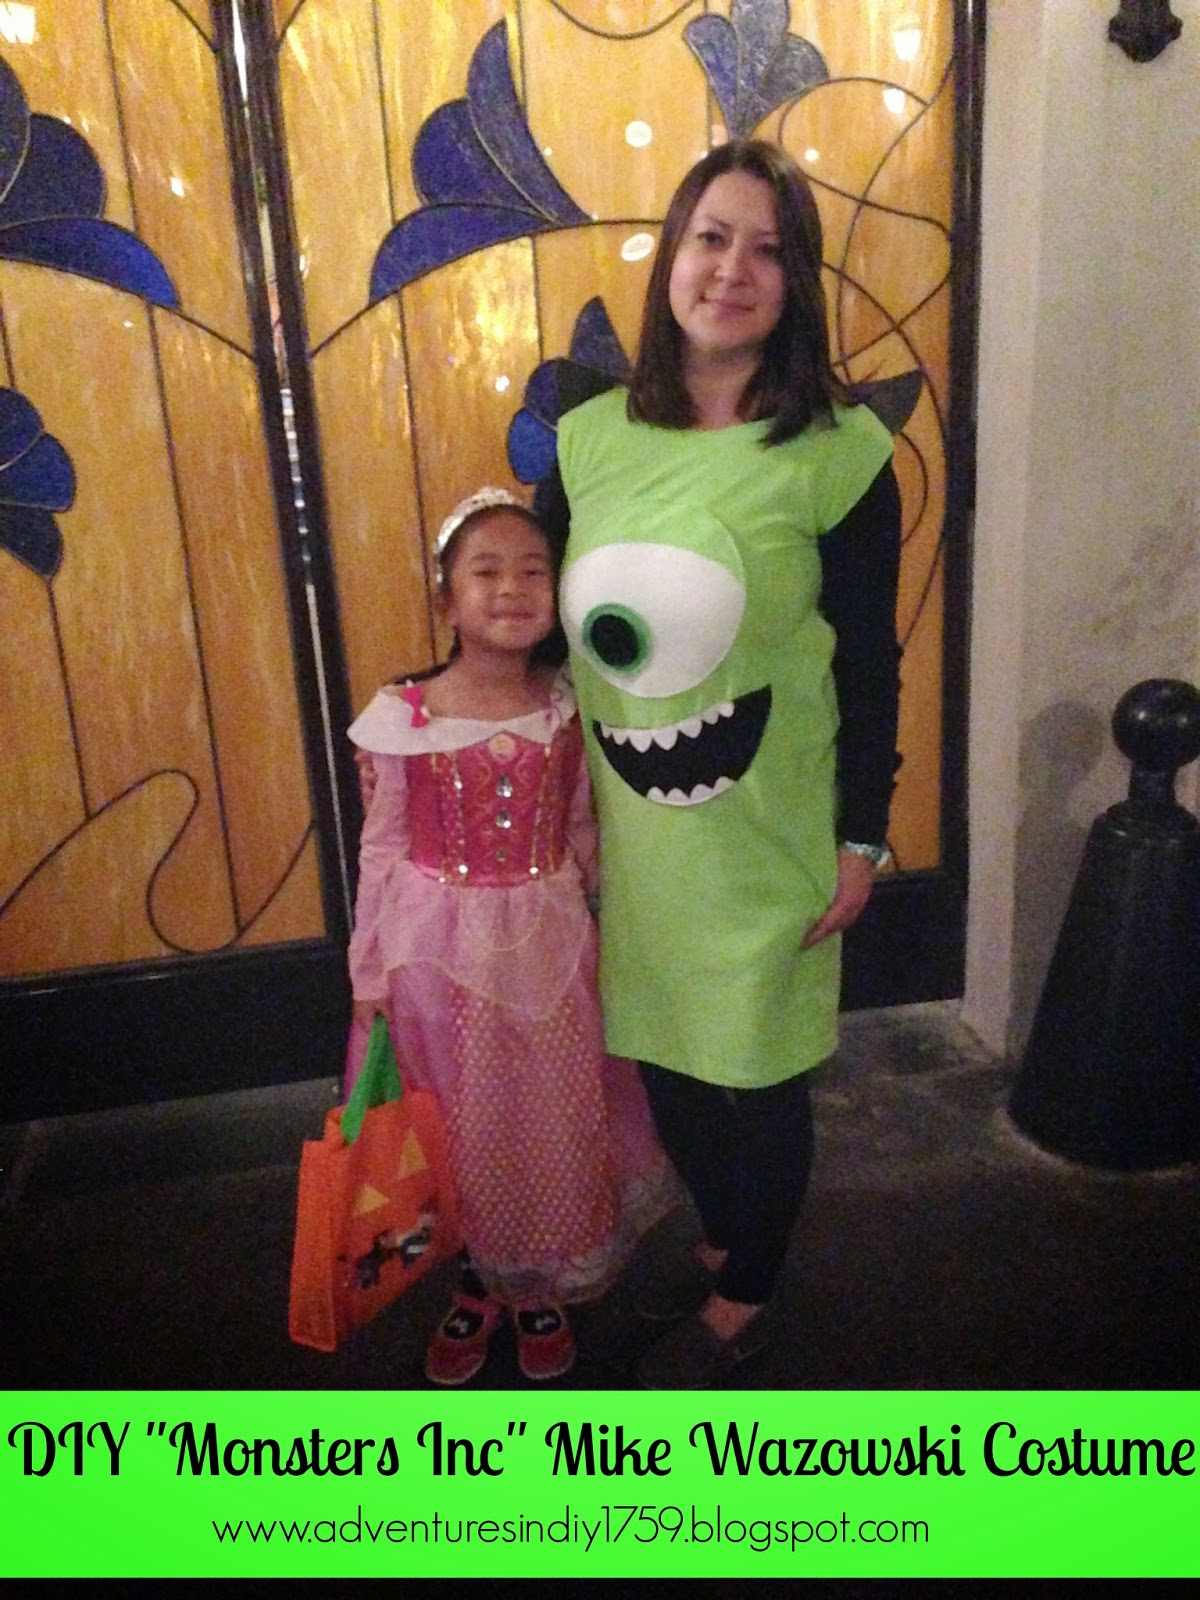 http://adventuresindiy1759.blogspot.com/2014/10/diy-monsters-inc-mike-wazowski-costume.html